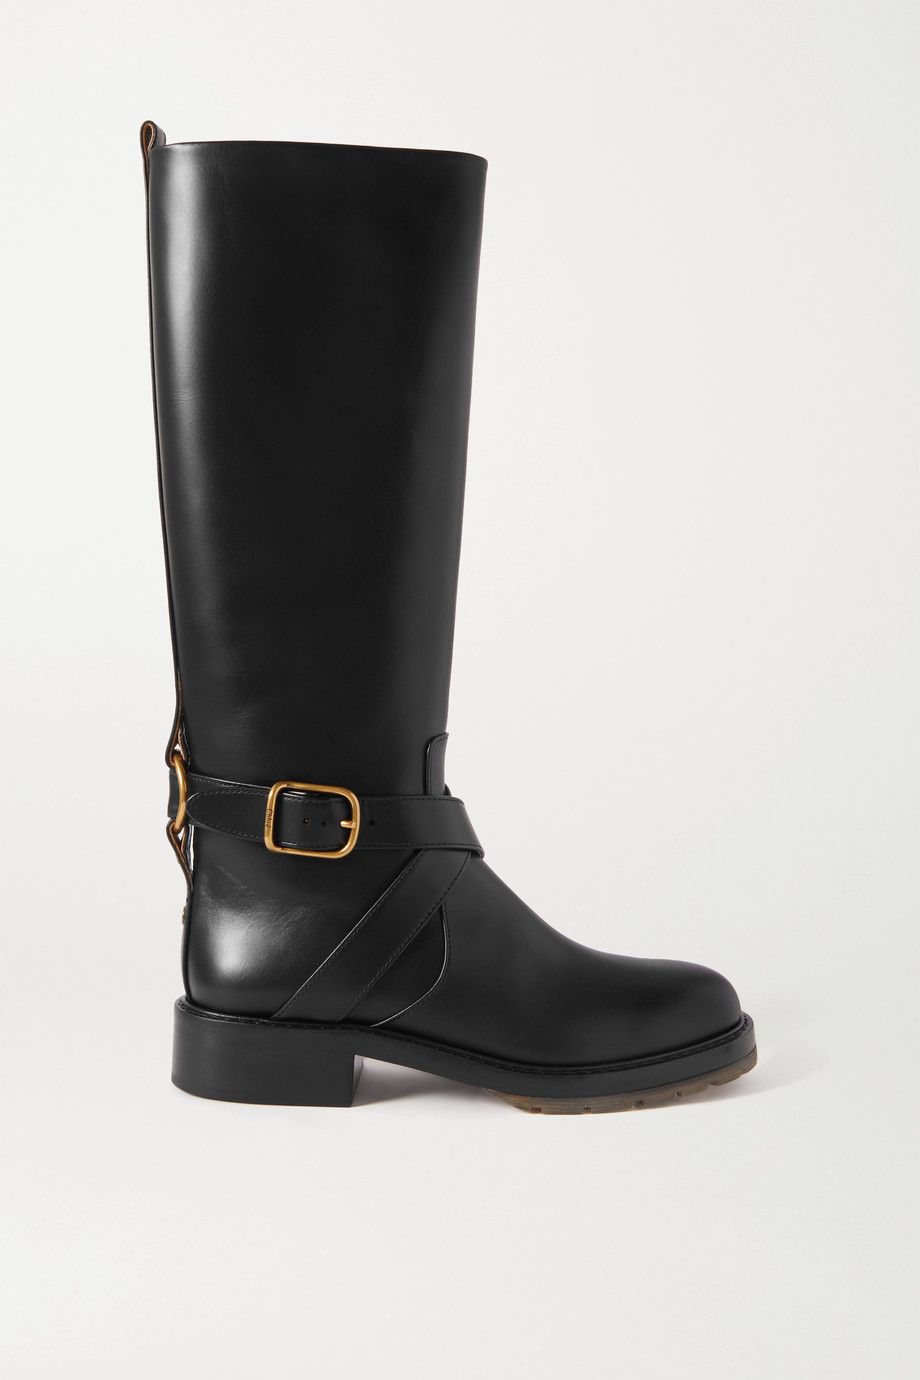 Chloé Diane buckled leather knee boots